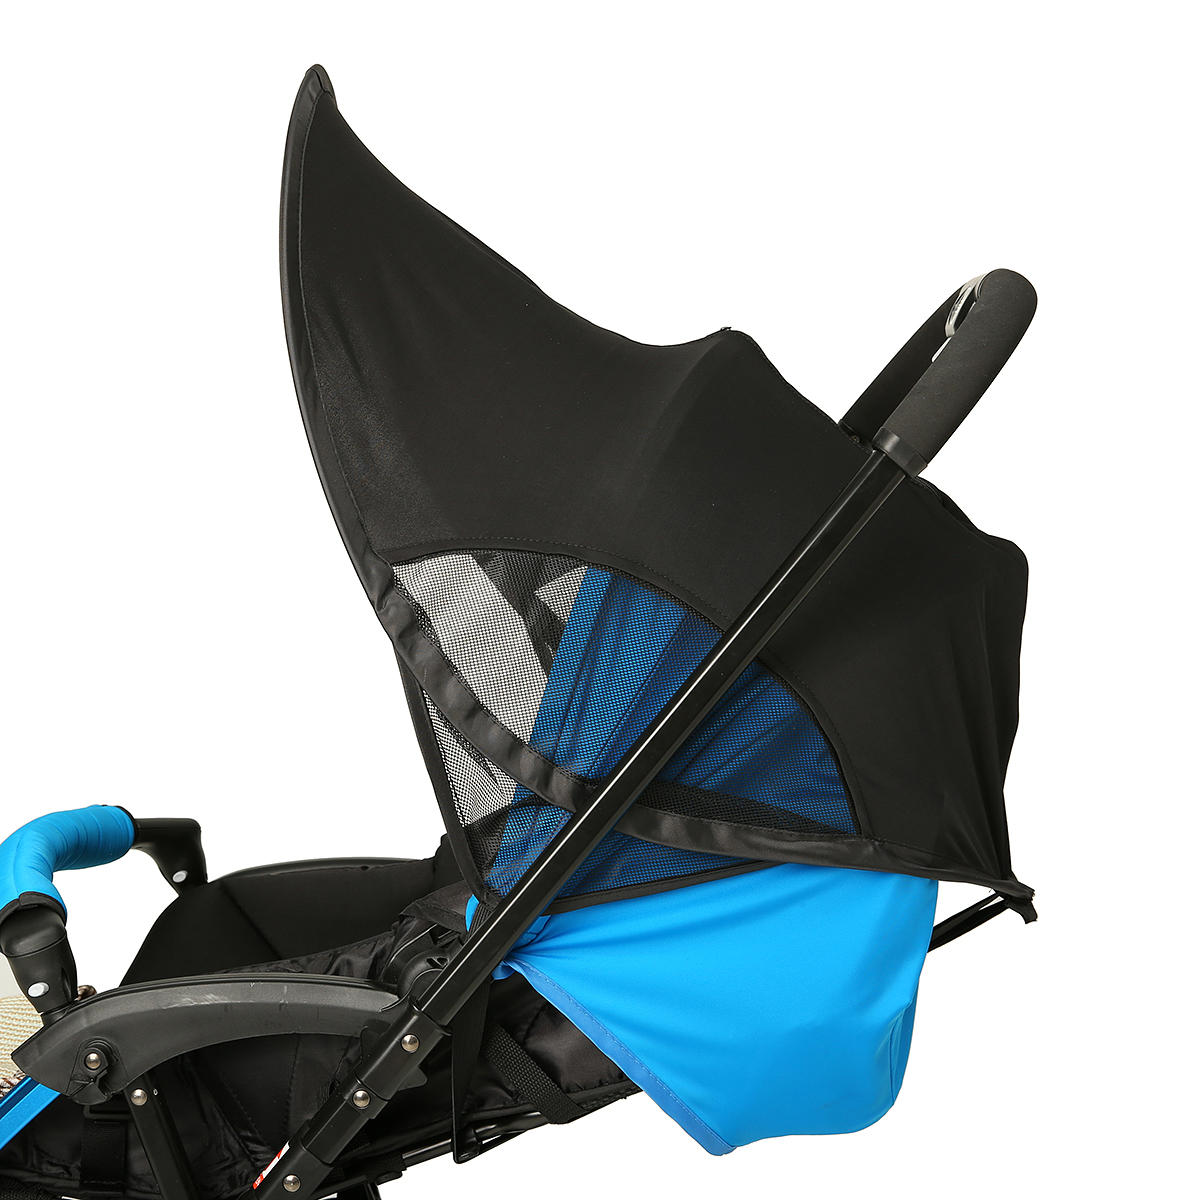 Baby Stroller Sunshade Canopy Cover For Prams Universal Car Seat Buggy Pushchair Cap Sun Hood Stroller Accessories - 4